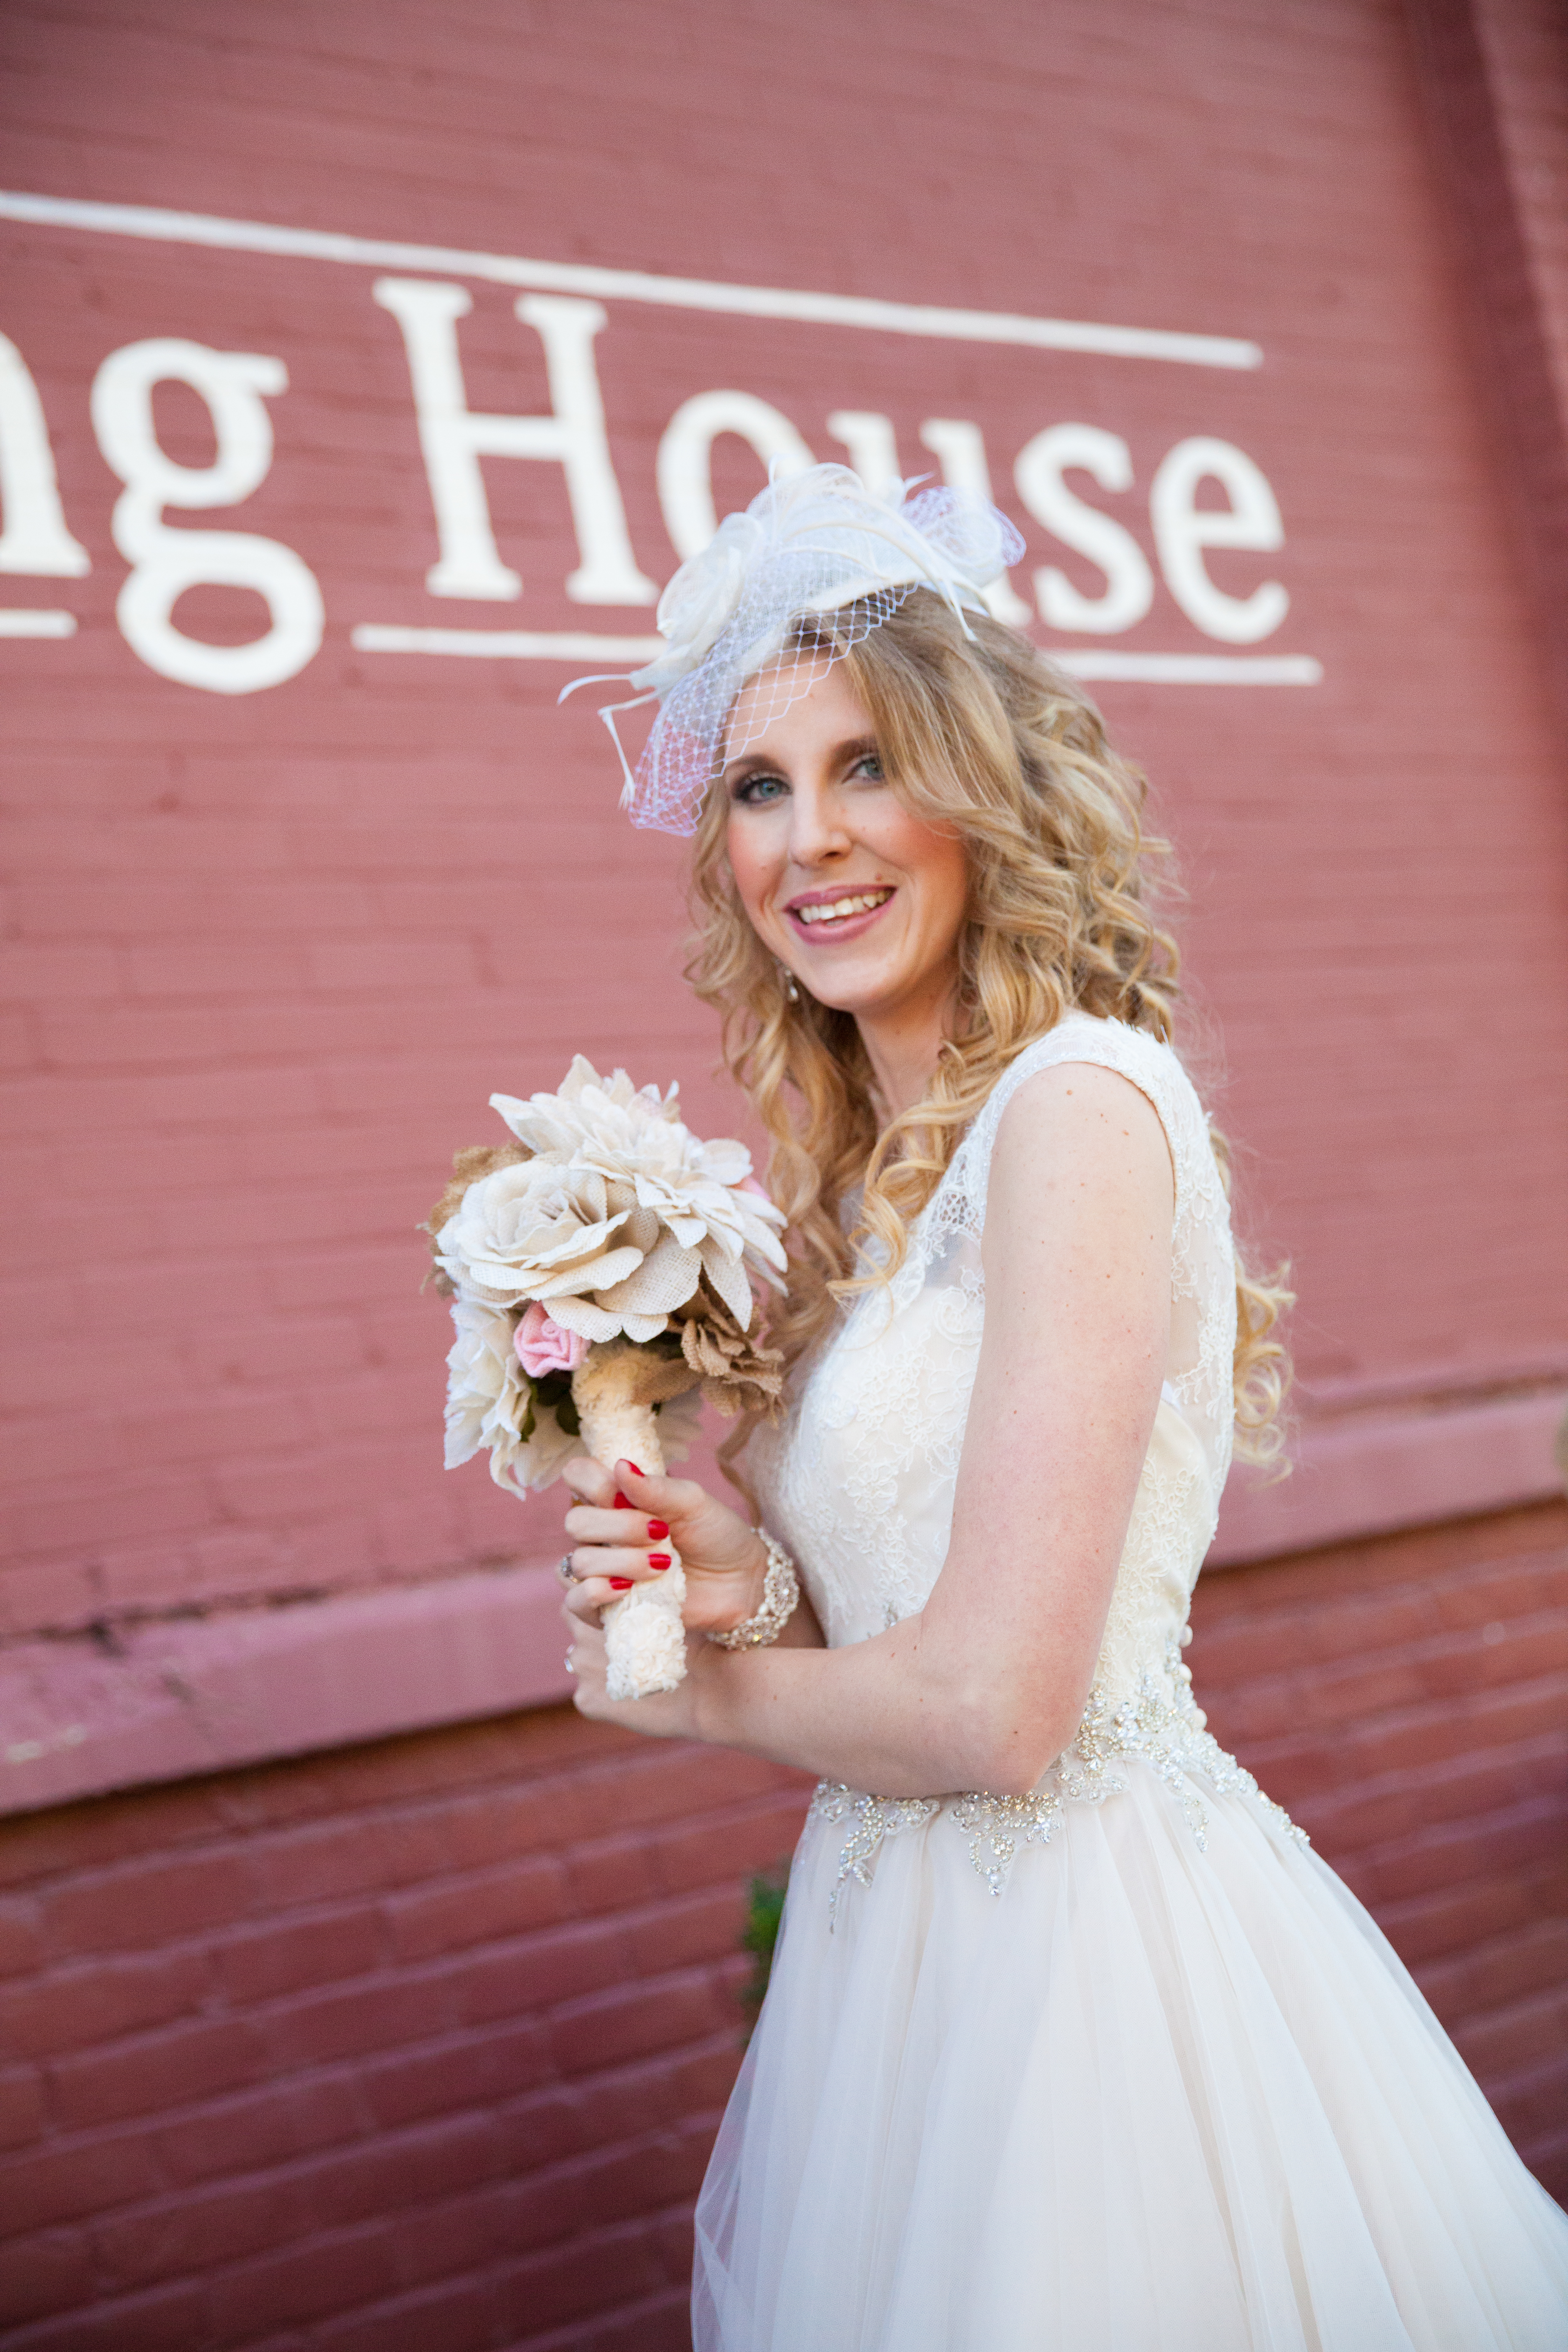 Outdoor photo of bride